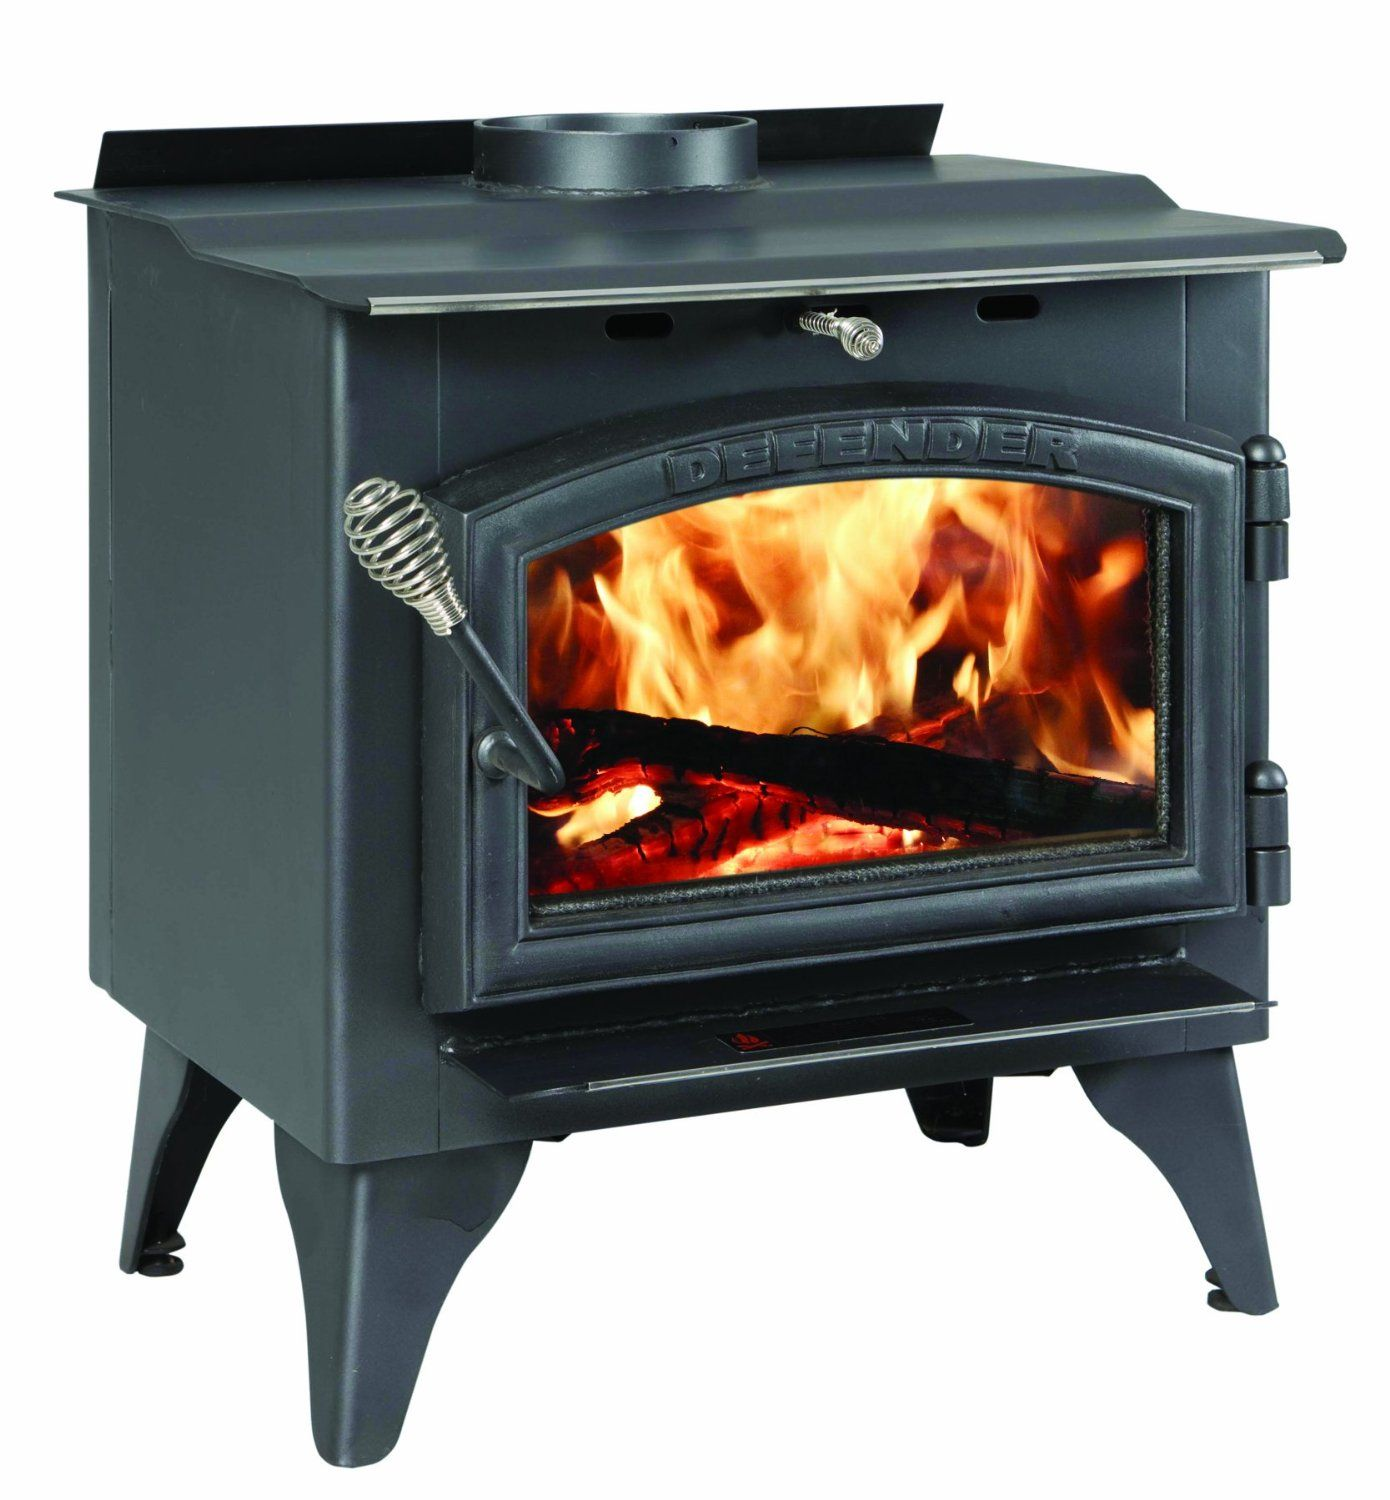 Contents1 Top 7 Wood Furnaces2 The Basics Behind Good Wood Stove Furnaces3 Looking At The Be Wood Stove Free Standing Electric Fireplace Freestanding Fireplace